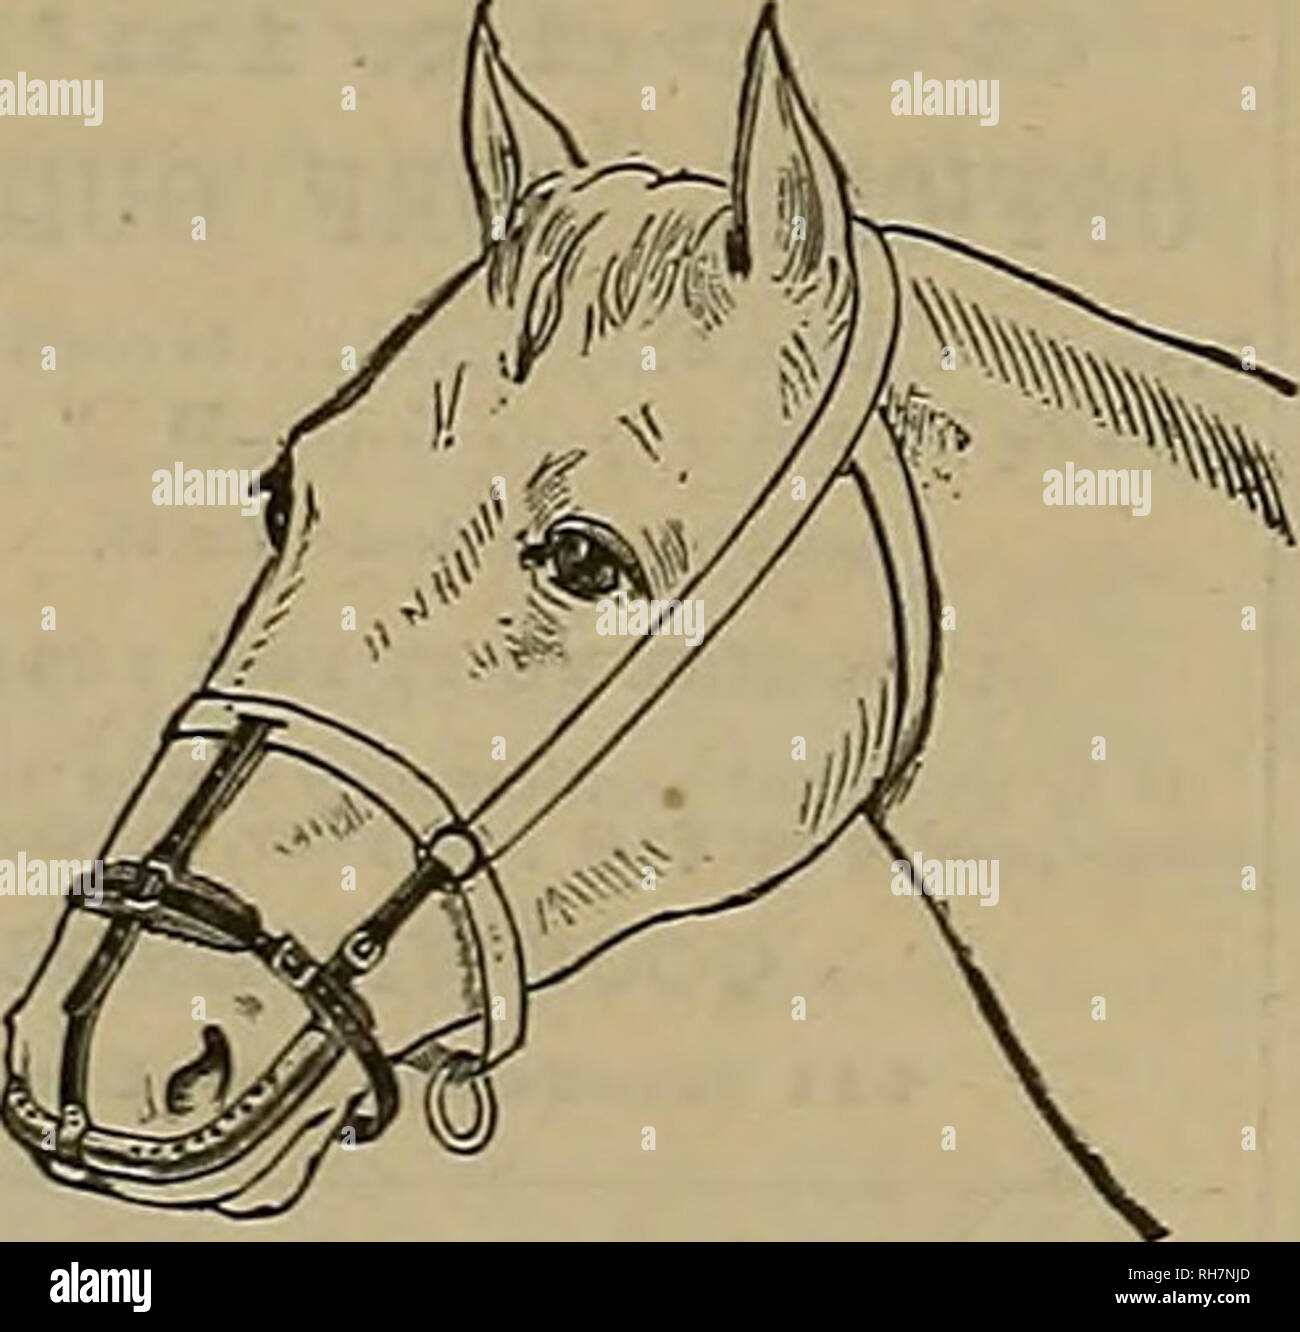 . Breeder and sportsman. Horses. Can T>e2 worn without discomfort  while feeding and sleeping. A Specific for Catarrh in Horses. Cures and prevents DISTEMPER, and aU contagious diseases COUGHS, COLDS, PLNK-EYE, IN- FLUENZA, NASAL, GLEET, HEAVES, etc. The only effectual method Invented of applyingTmedicine directly to the Beat of the above-mentioned ailments in horses andcattle. Address Welch Inhaler and Medicine Co., 57 Second St., San Francisco, Cal. Studehaker Bros. Manufact'g Co, Sole Agents for FRAZIER FEED ALL HORSES CLEAN OATS BY I'MXU I. Please note that these images are extracted f Stock Photo